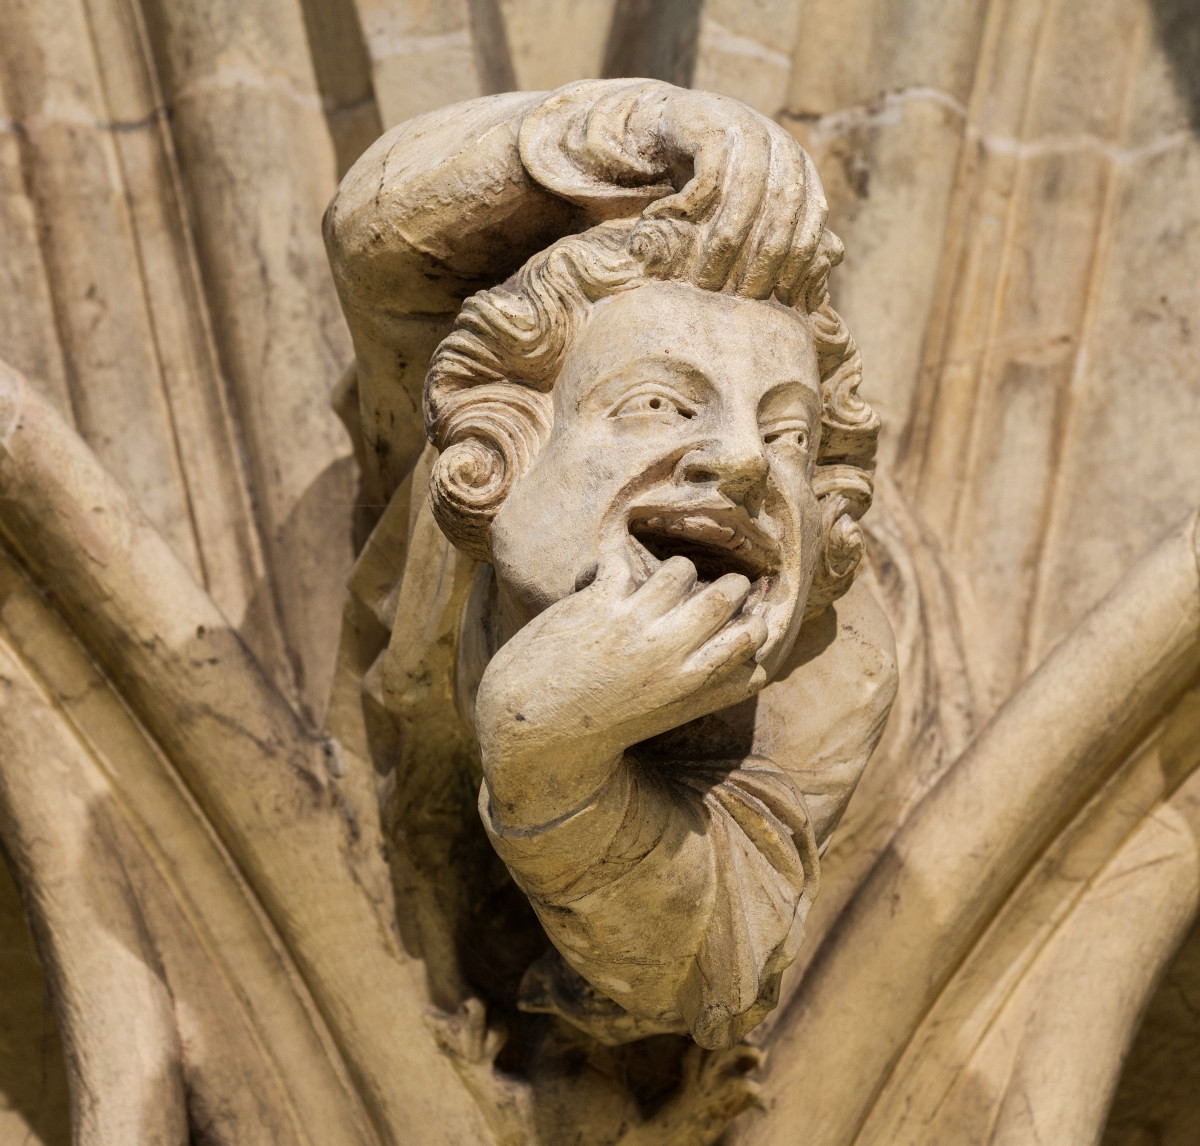 Grotesque on the wall of the chapter house. Credit David Iliff